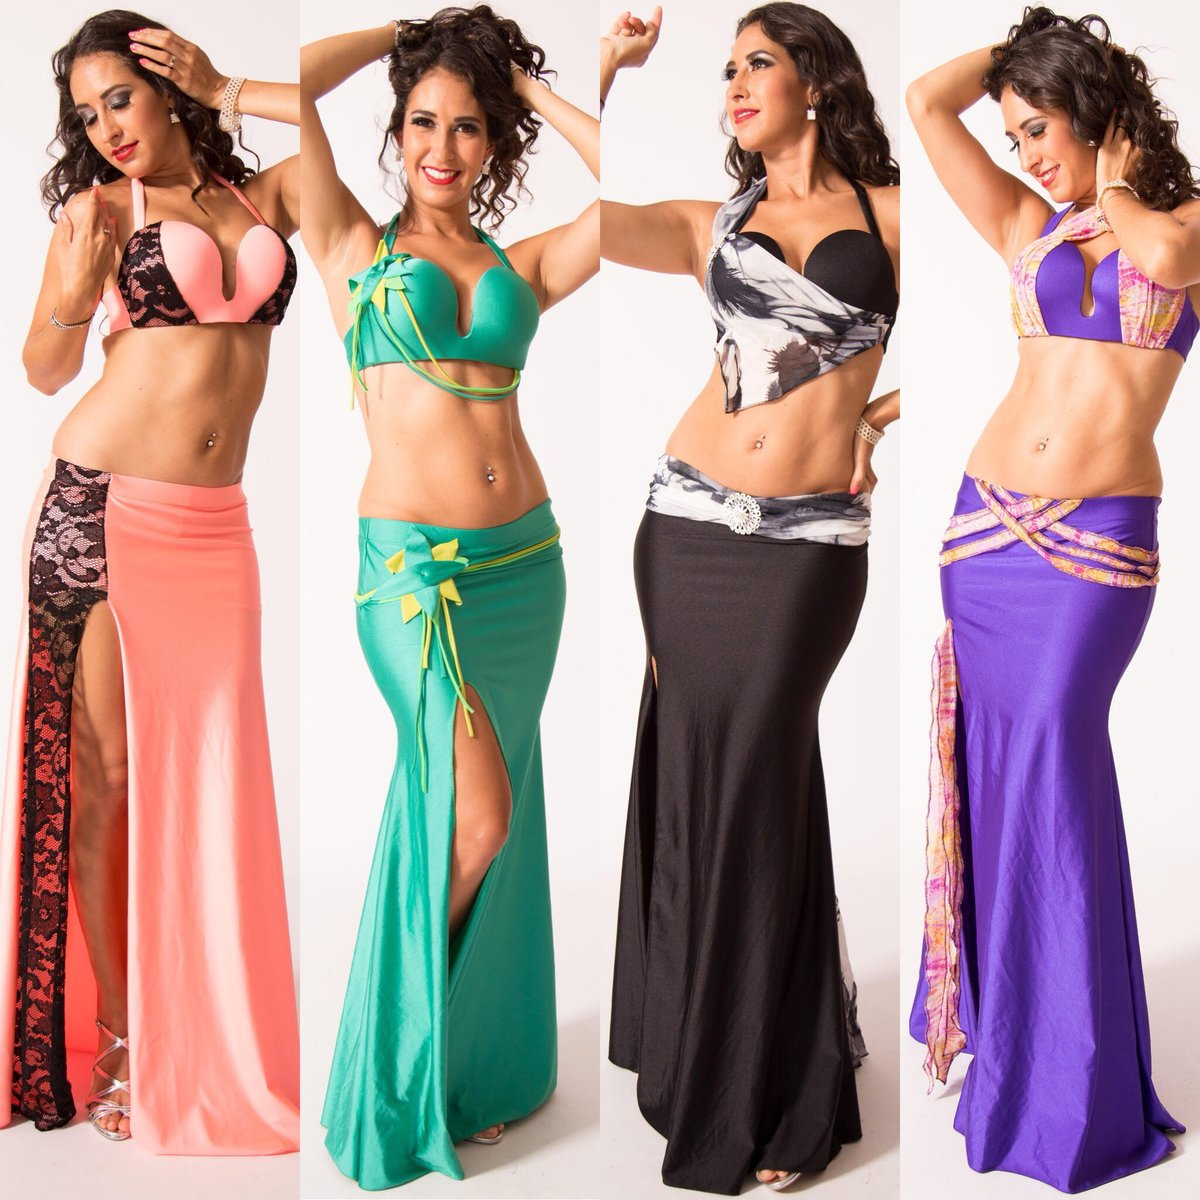 Bellydance Basic Costumes RDV SHOP!!!Special prices for groups!!!Different models,colours and fabrics available!!!Made to measure!!!  #bellydancecostume #orientaldance #danseorientale #danzaorientale #danzadelvientre #danzaoriental #rdvshop http://bit.ly/1PGZv56 pic.twitter.com/uJ4vrBAaCD